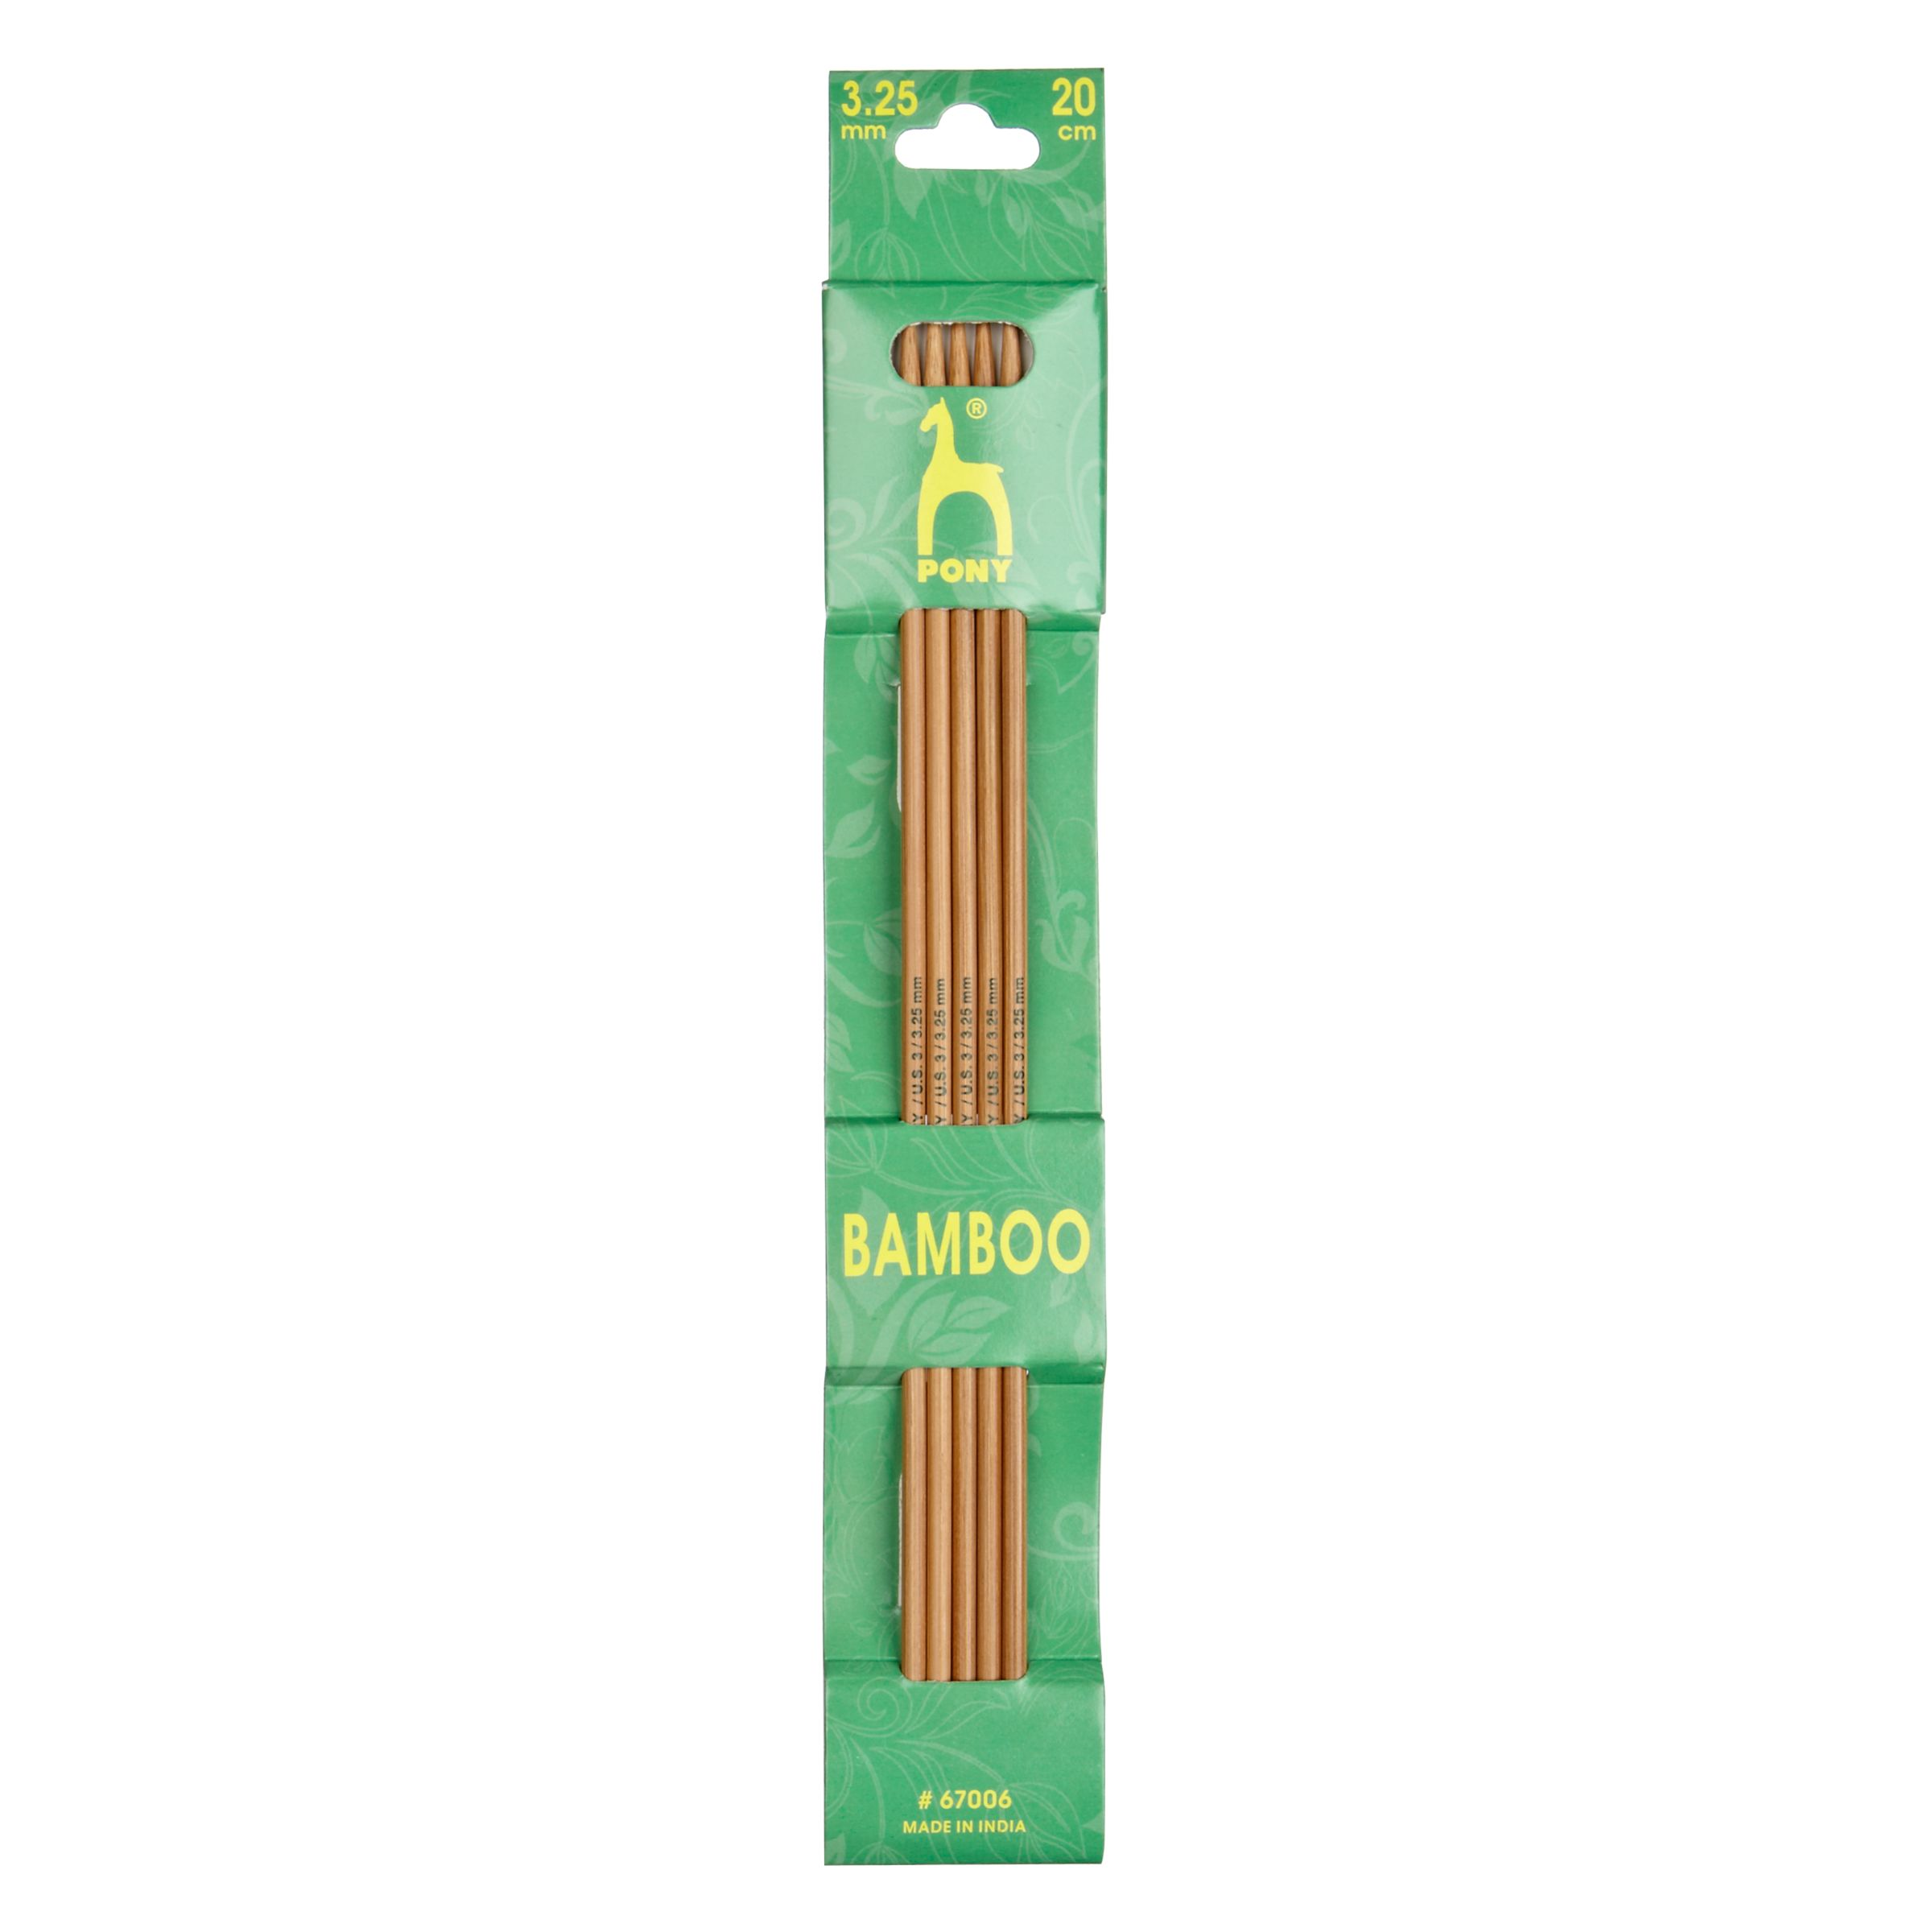 Pony Pony 20cm Bamboo Knitting Needles, Pack of 5, Assorted Widths